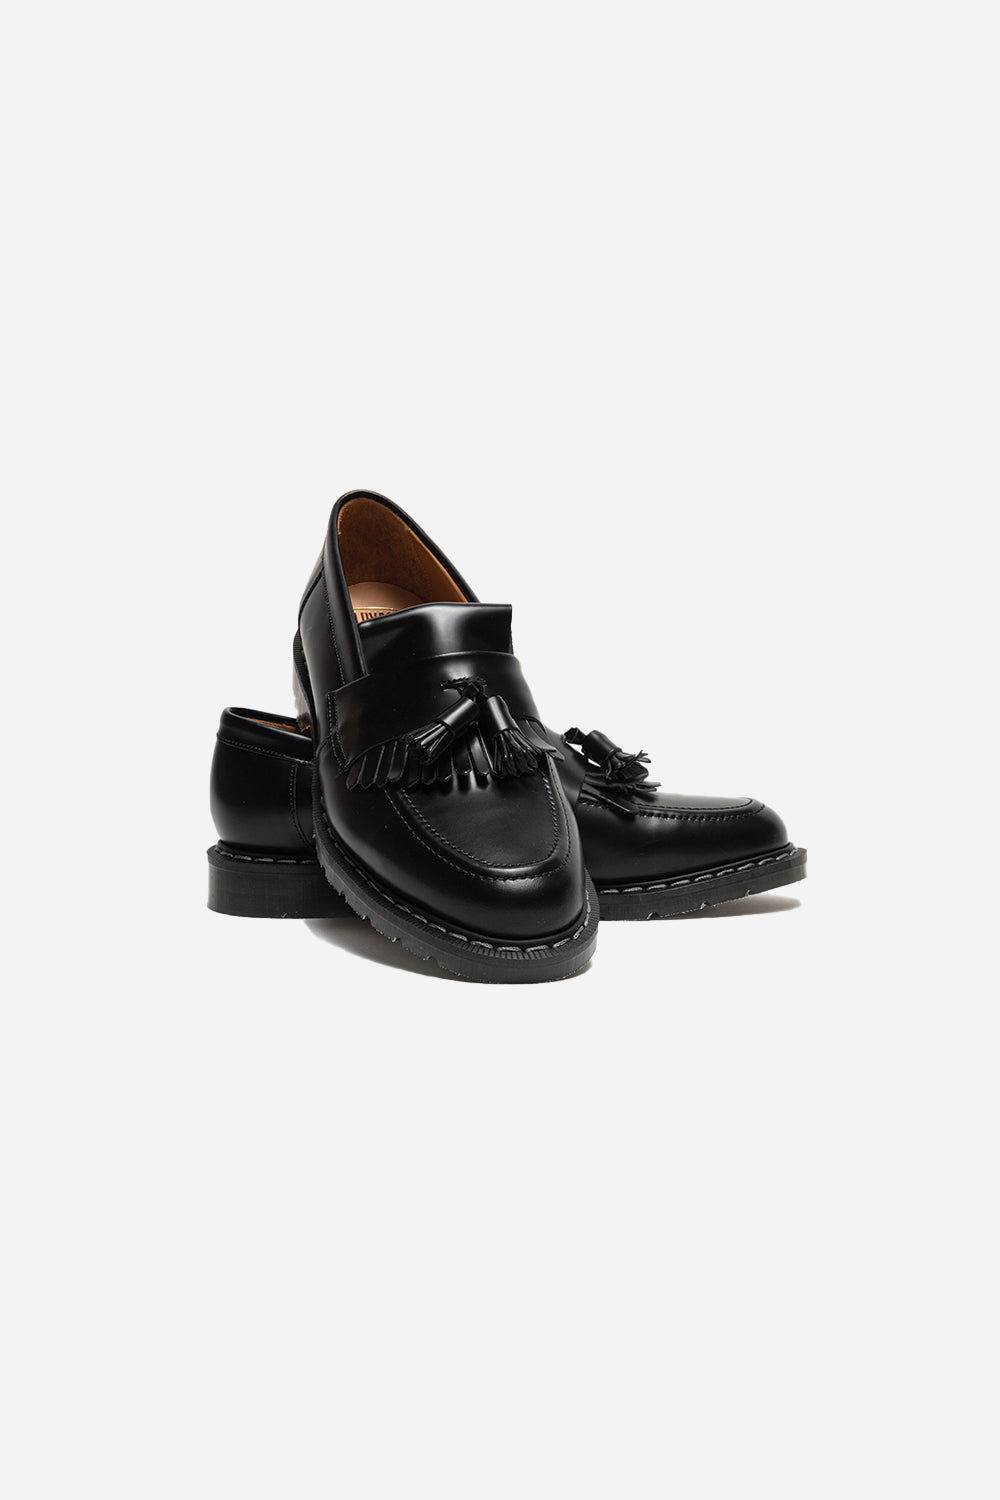 solovair-tassel-loafer-black-hi-shine